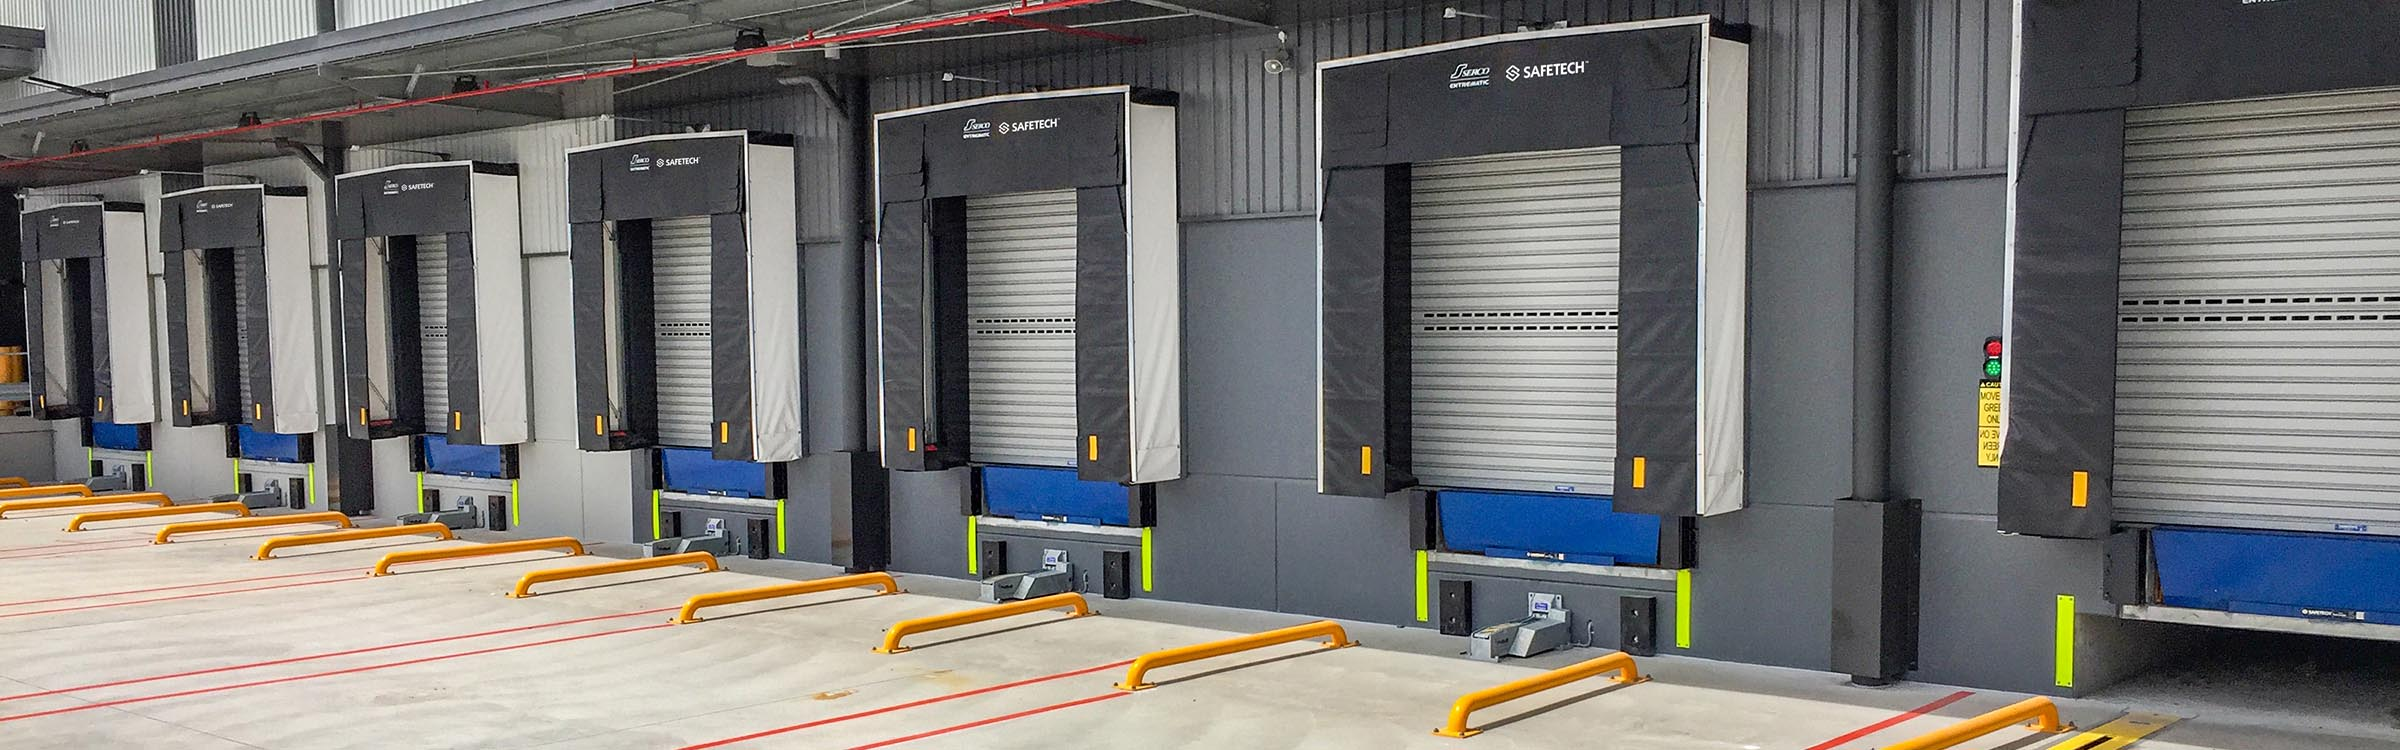 Row of new Safetech Docks